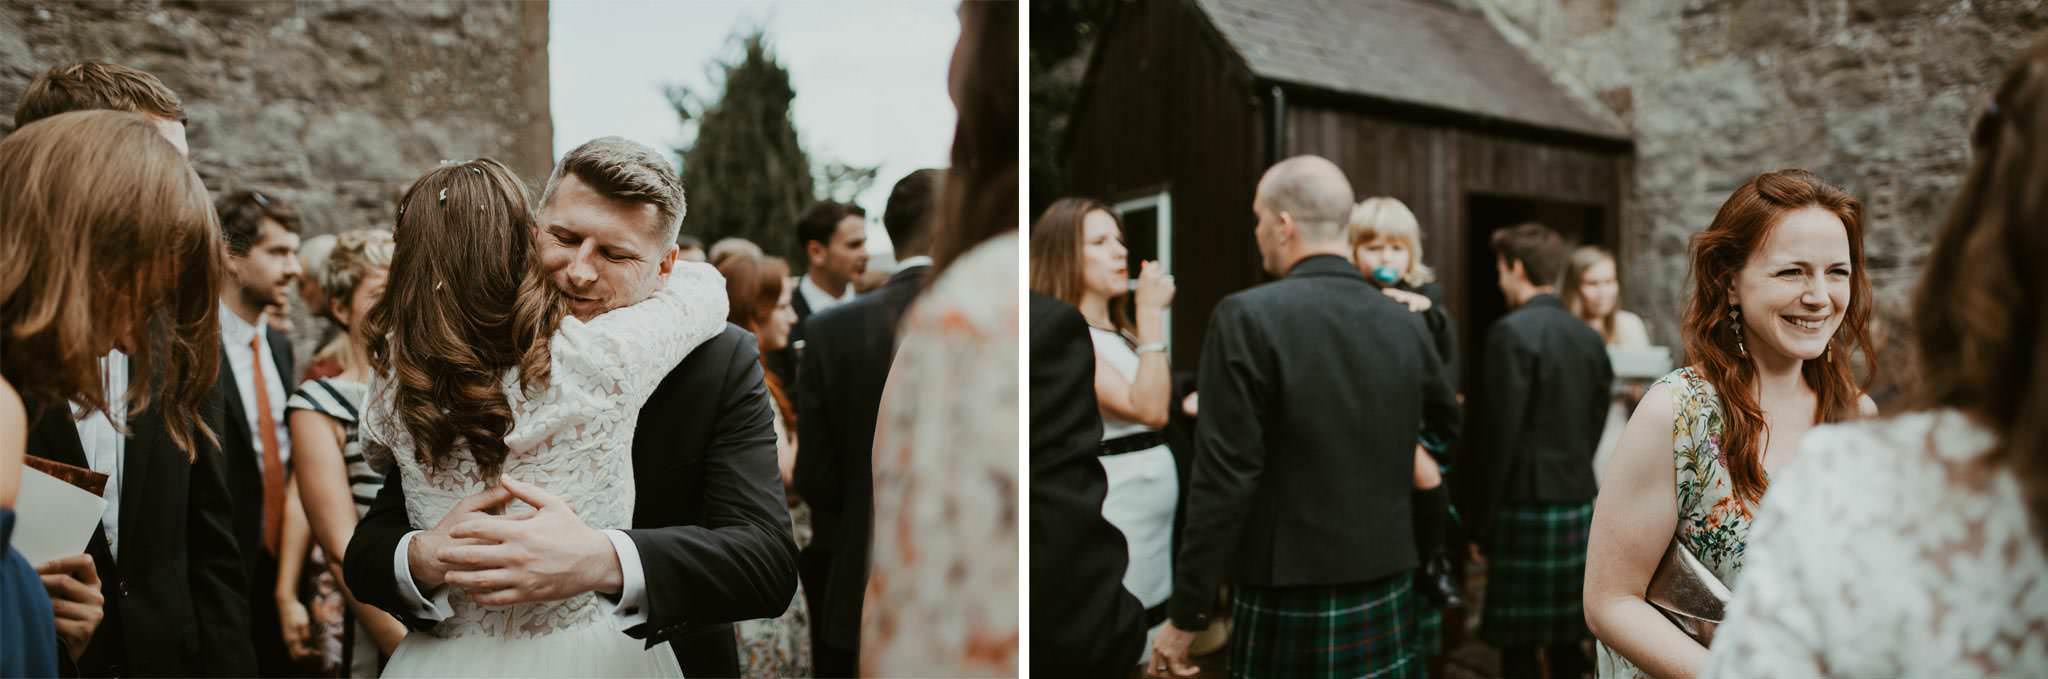 scotland-wedding-photographer-110